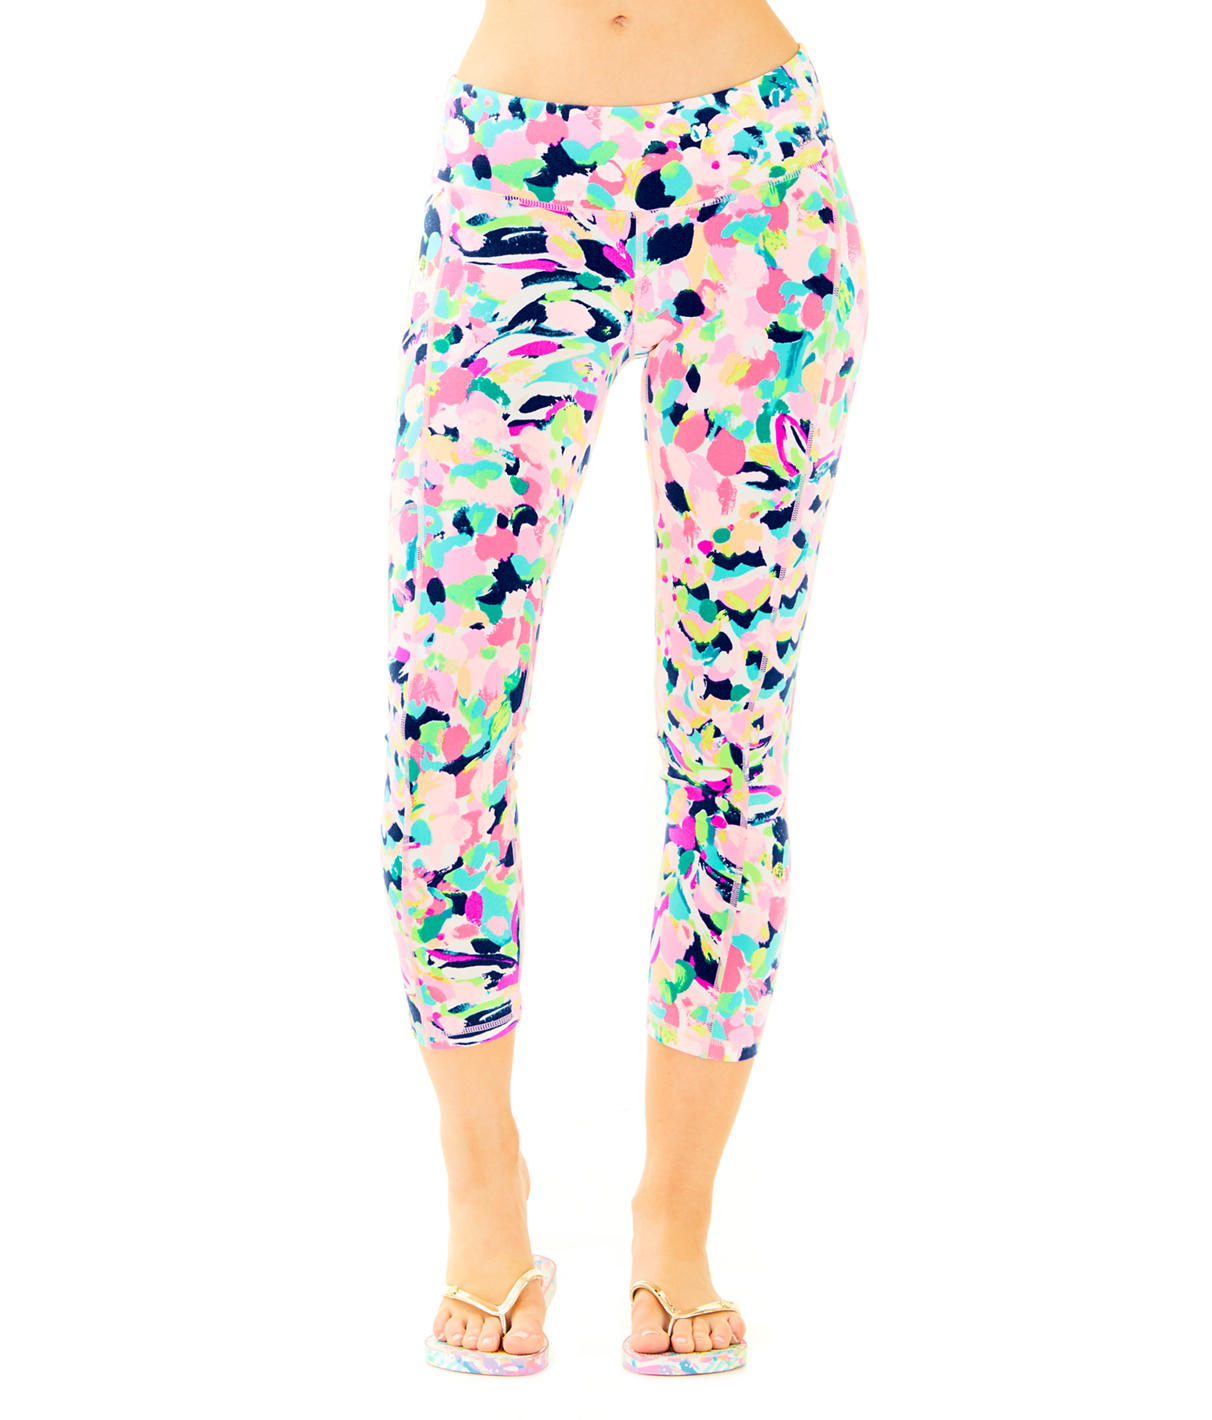 Lilly Pulitzer UPF 50+ Luxletic 24